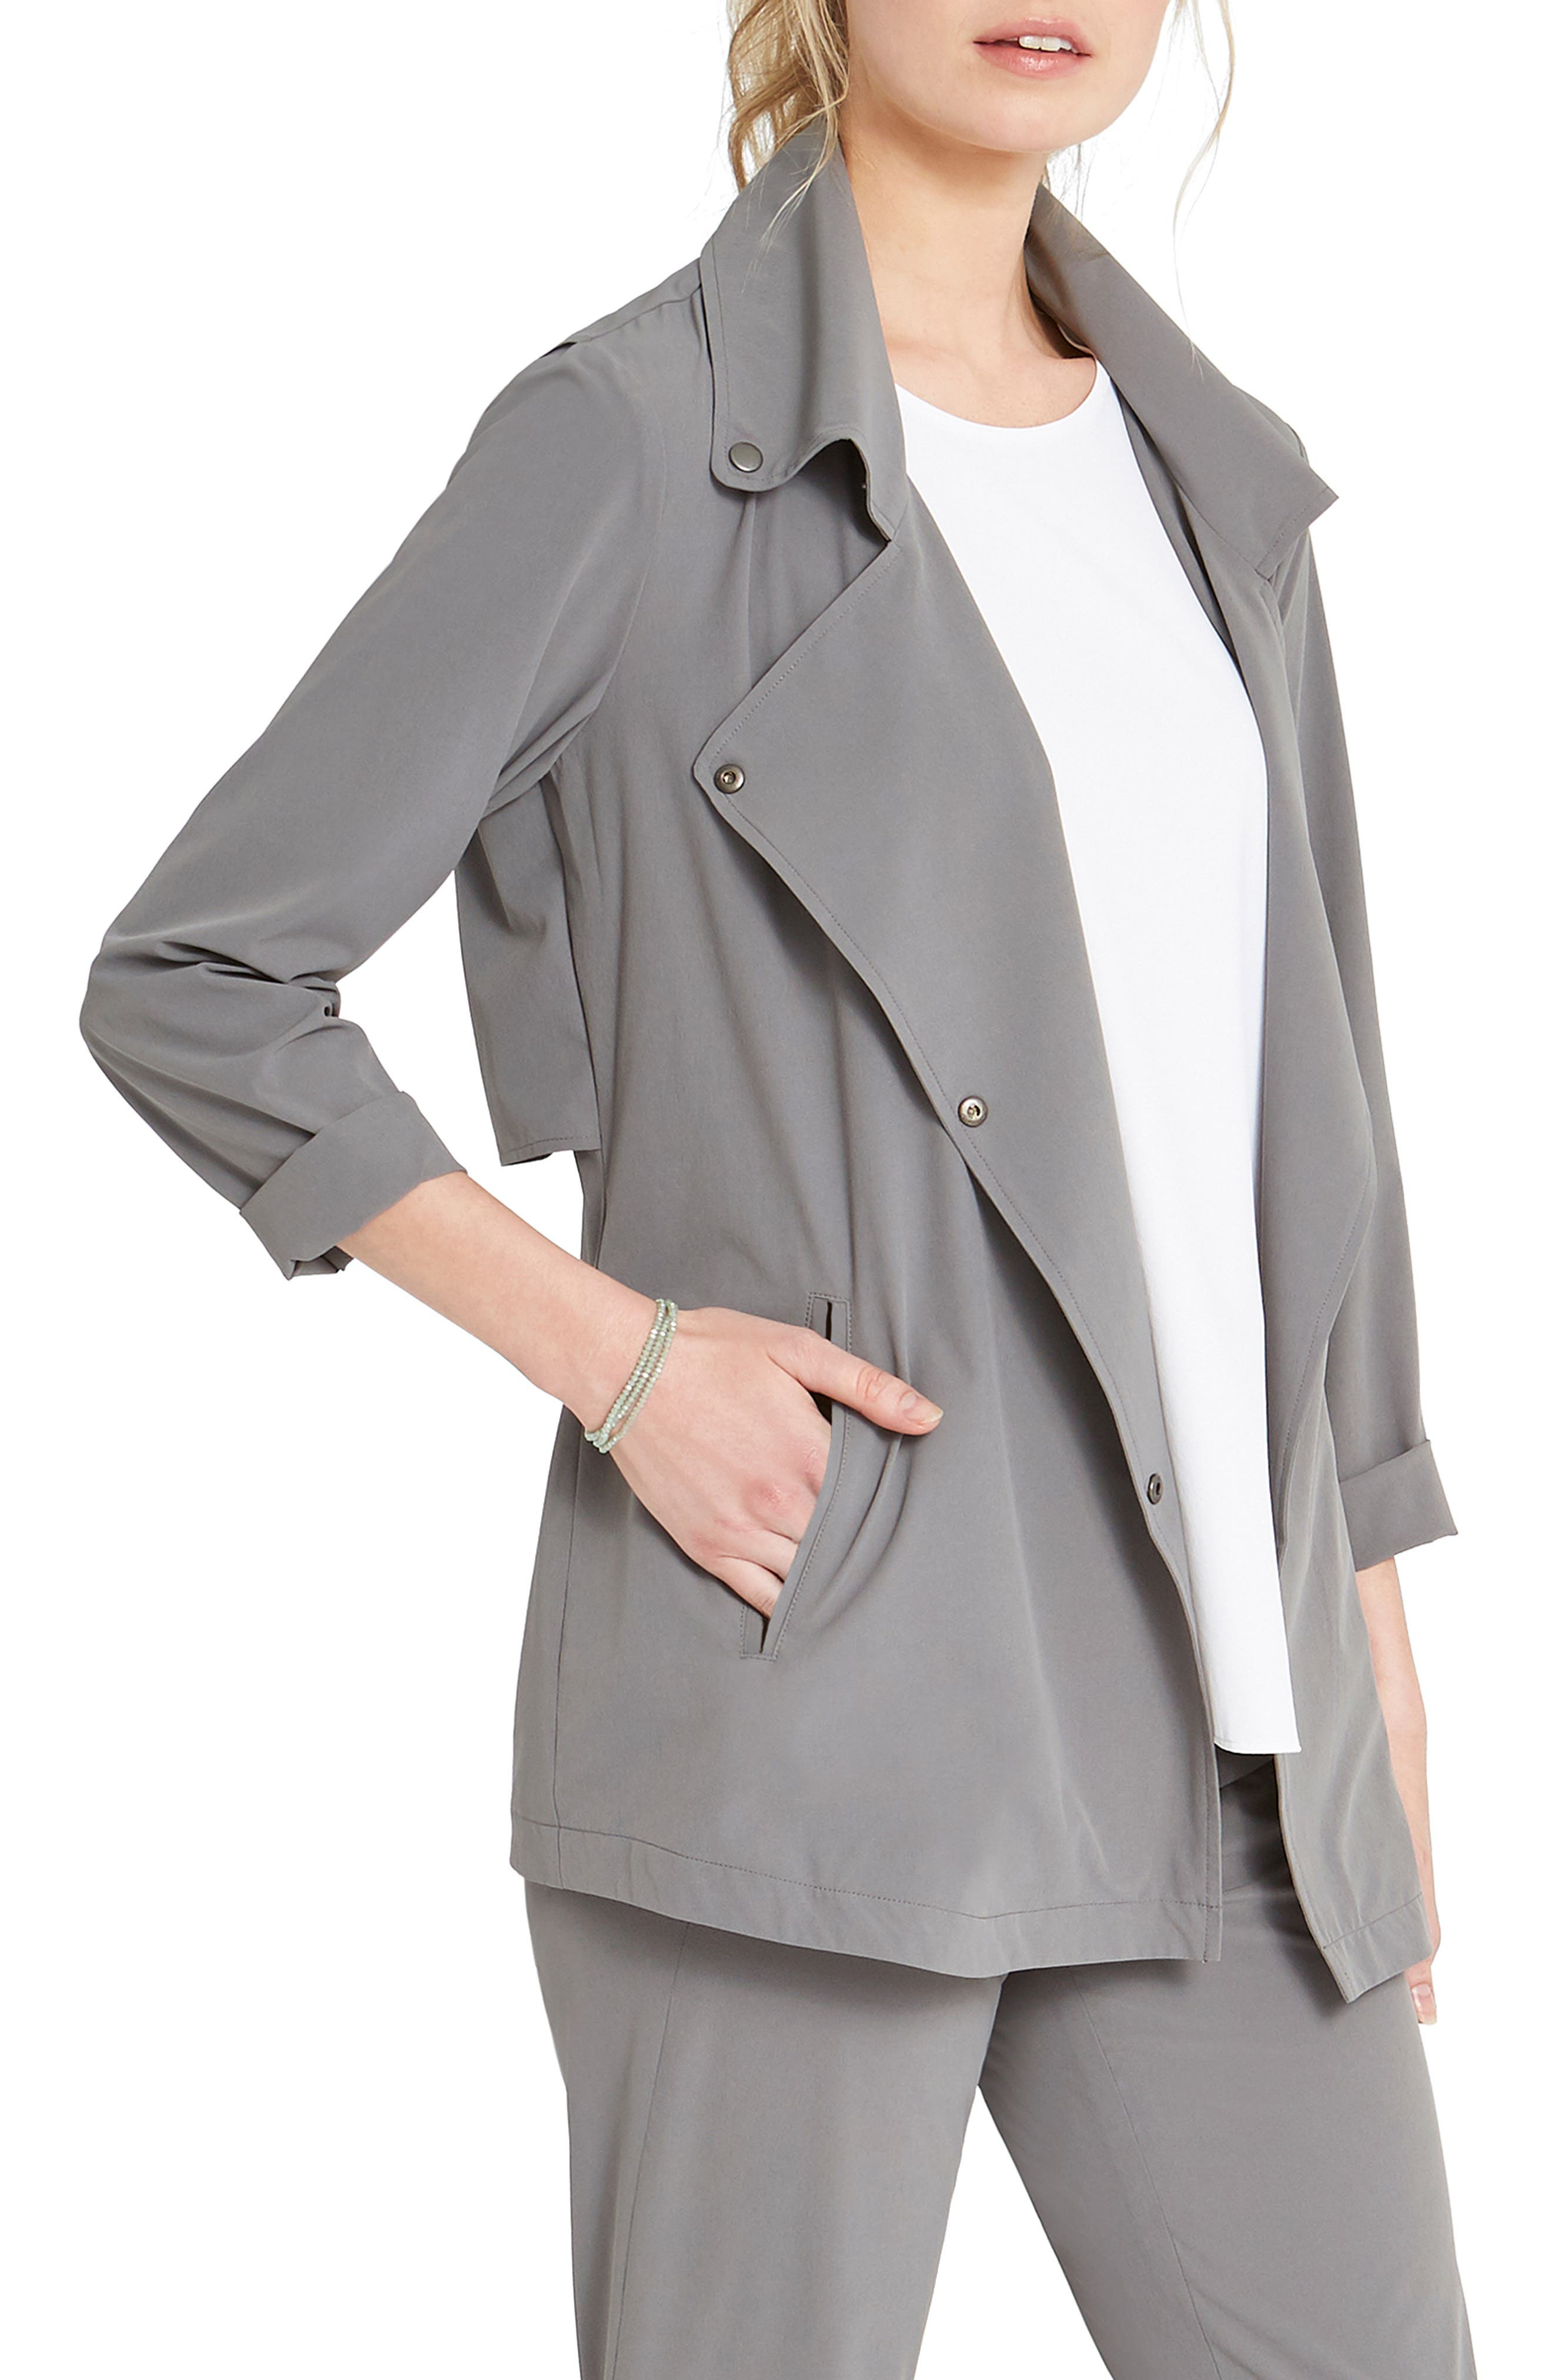 A casual jacket with trench details is cut from a tech fabric that has it all: four-way stretch, wrinkle-resistance, moisture-wicking comfort and a silky feel. Another feel-good factor: it was produced with a low environmental impact. Style Name: Nic+Zoe Tech Stretch Jacket. Style Number: 6098690. Available in stores.